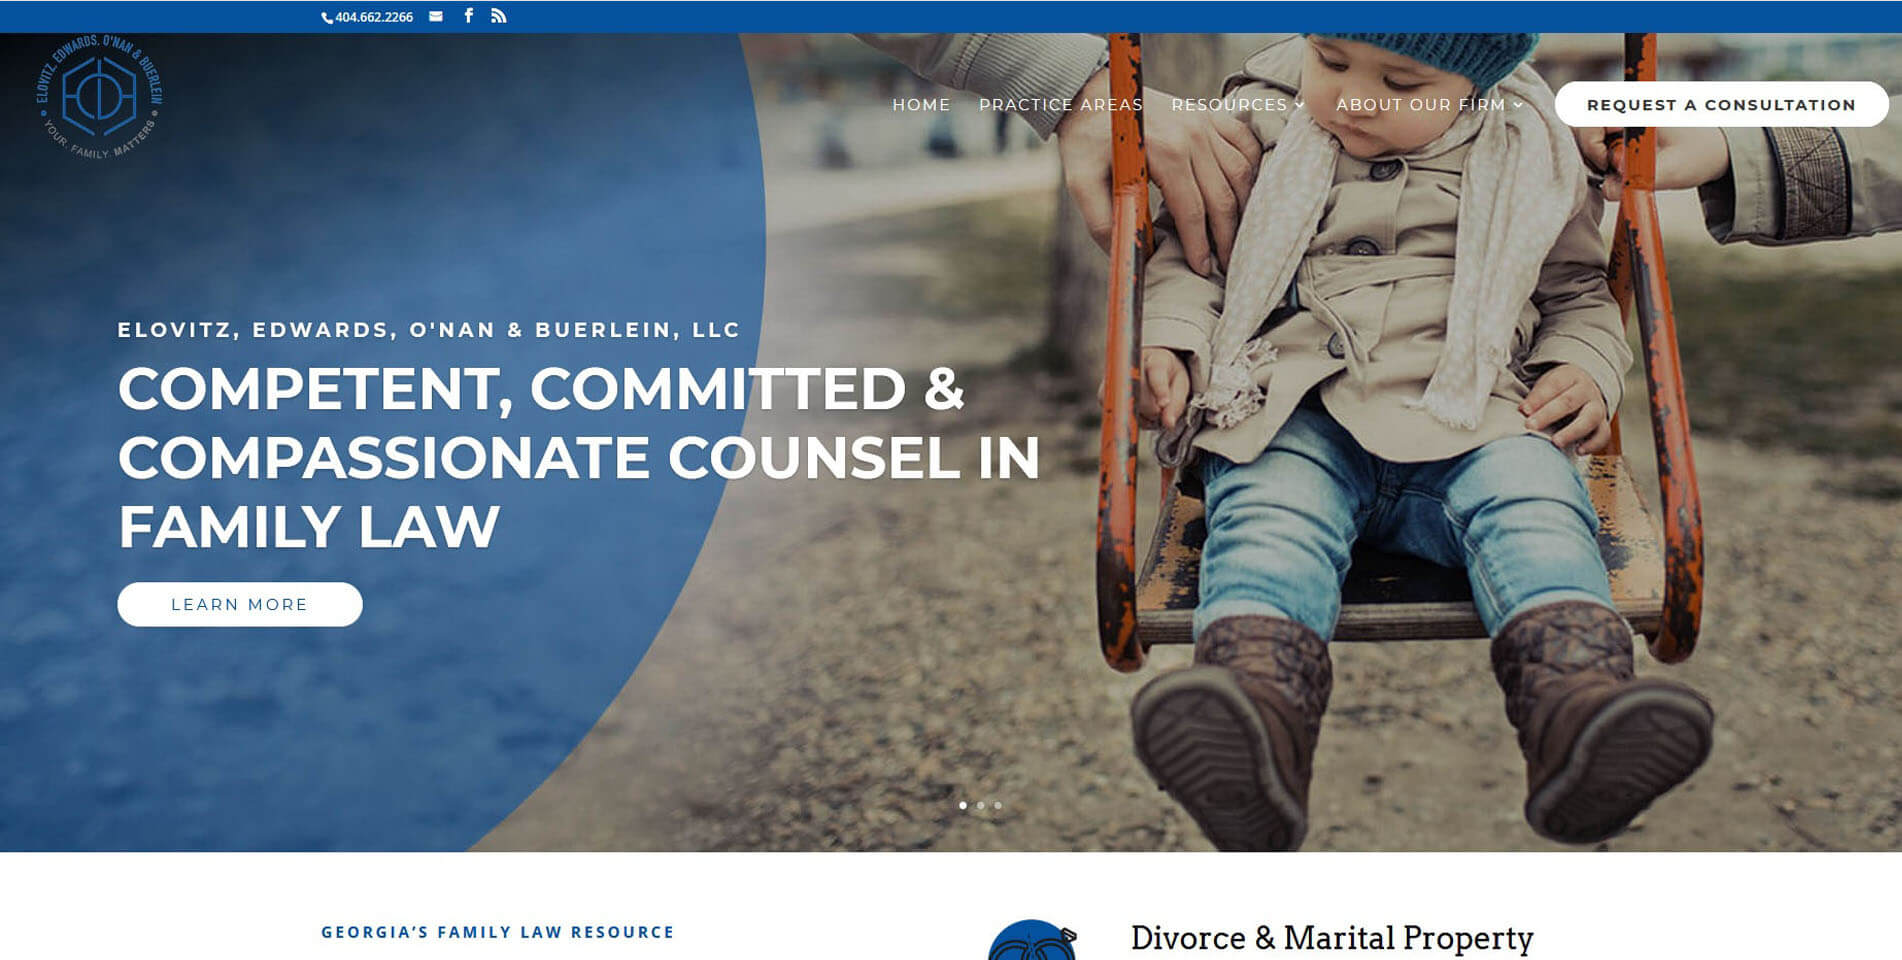 An image of the EO Family Law website homepage, created by Not Fade Away Marketing.